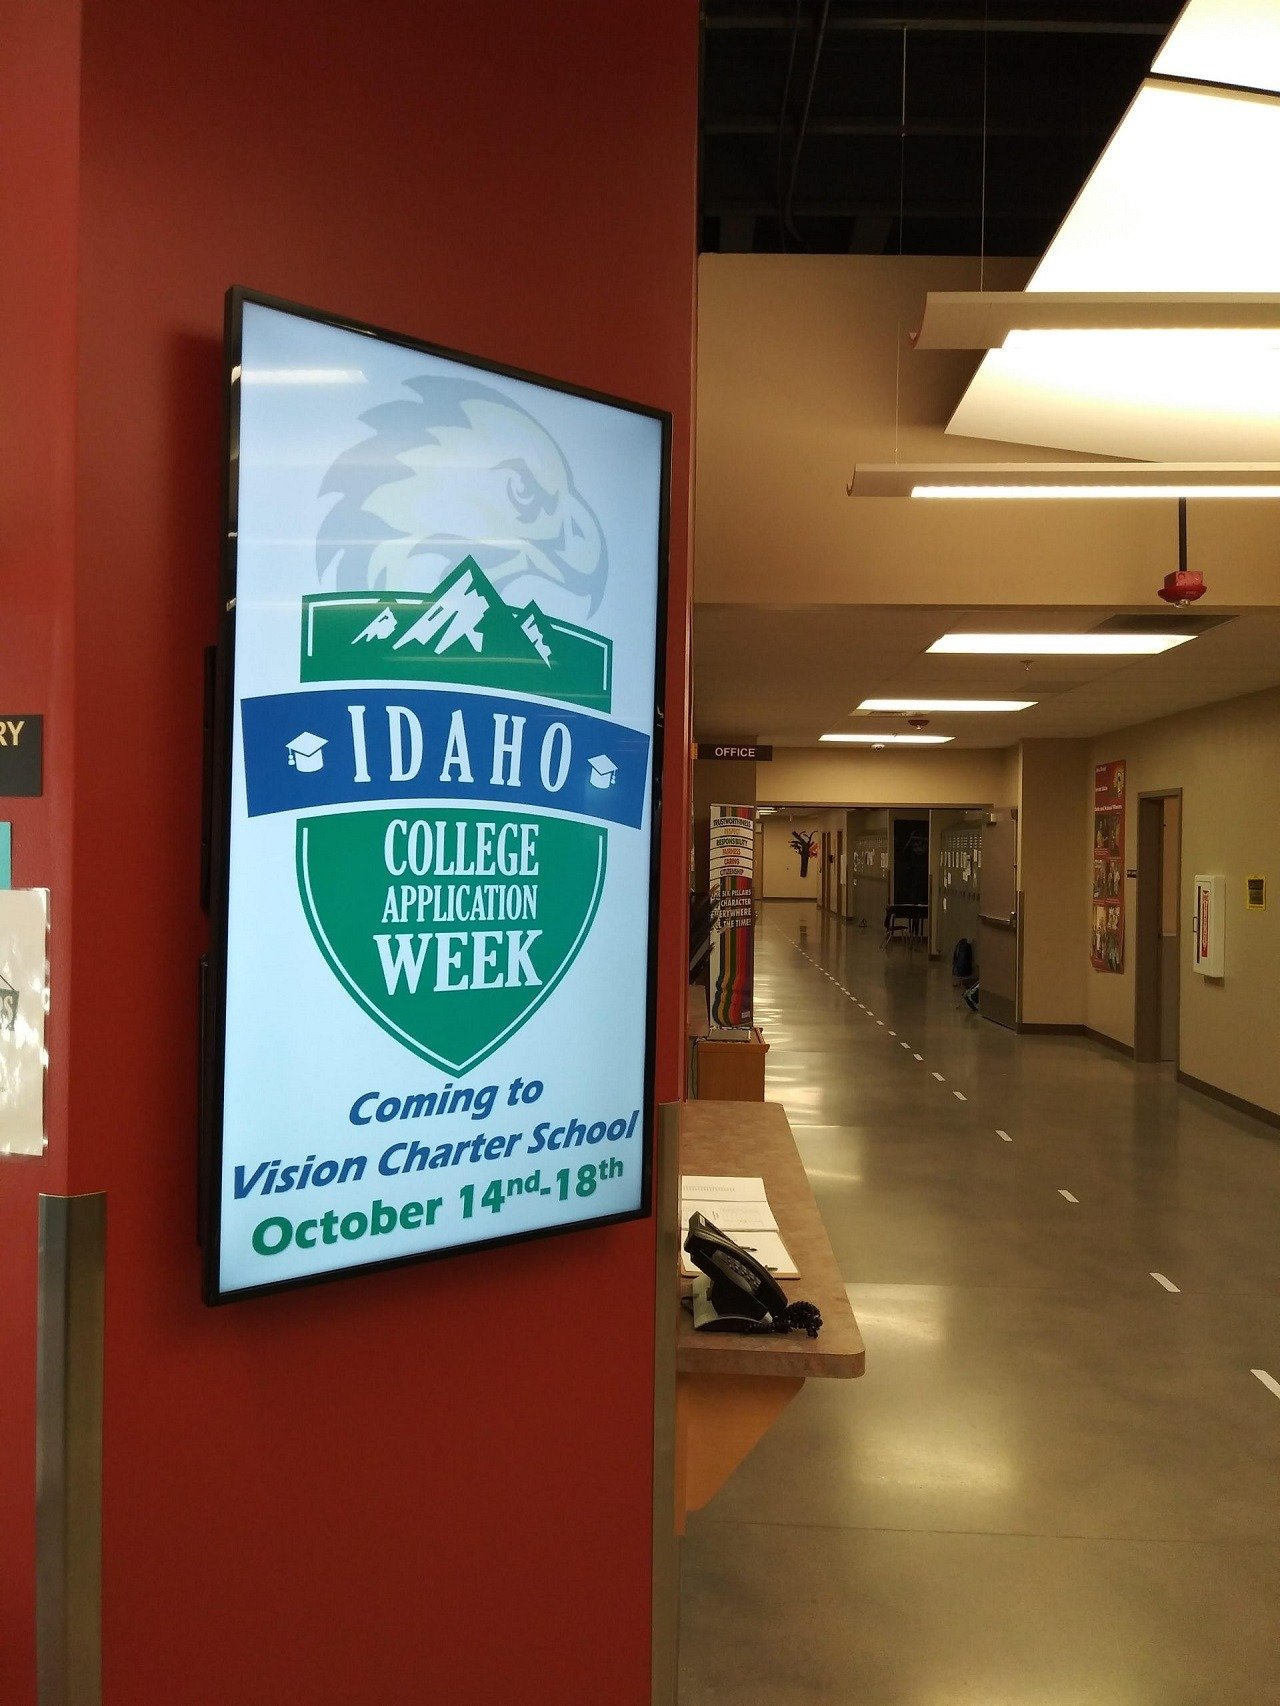 school information on digital signage displays